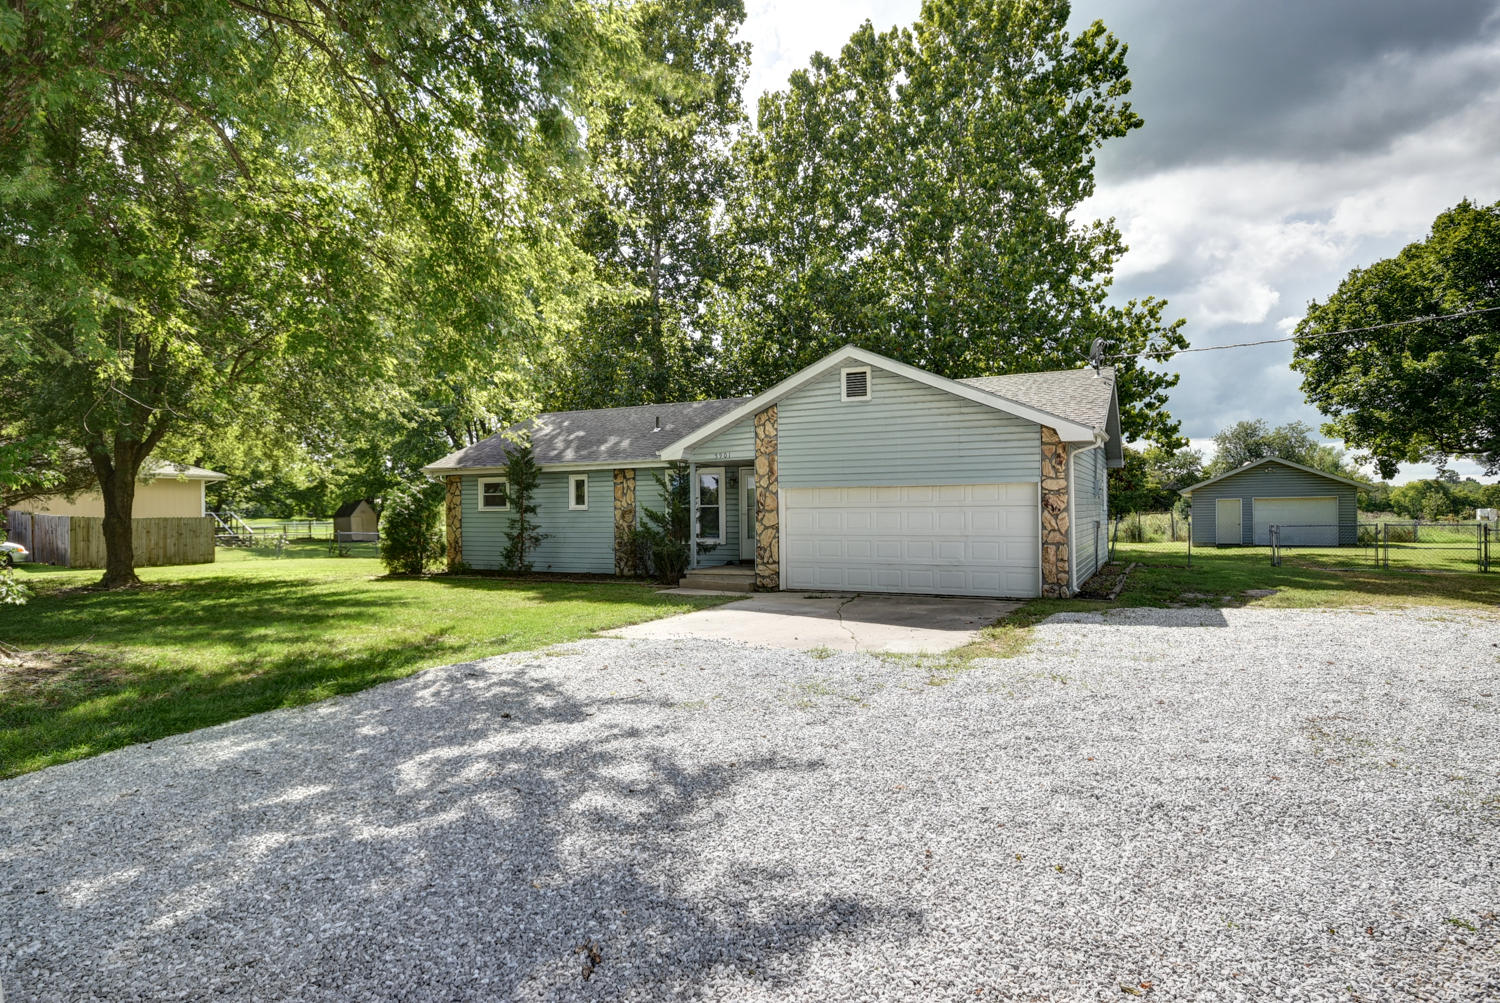 5901 South State Highway Ff Battlefield, MO 65619